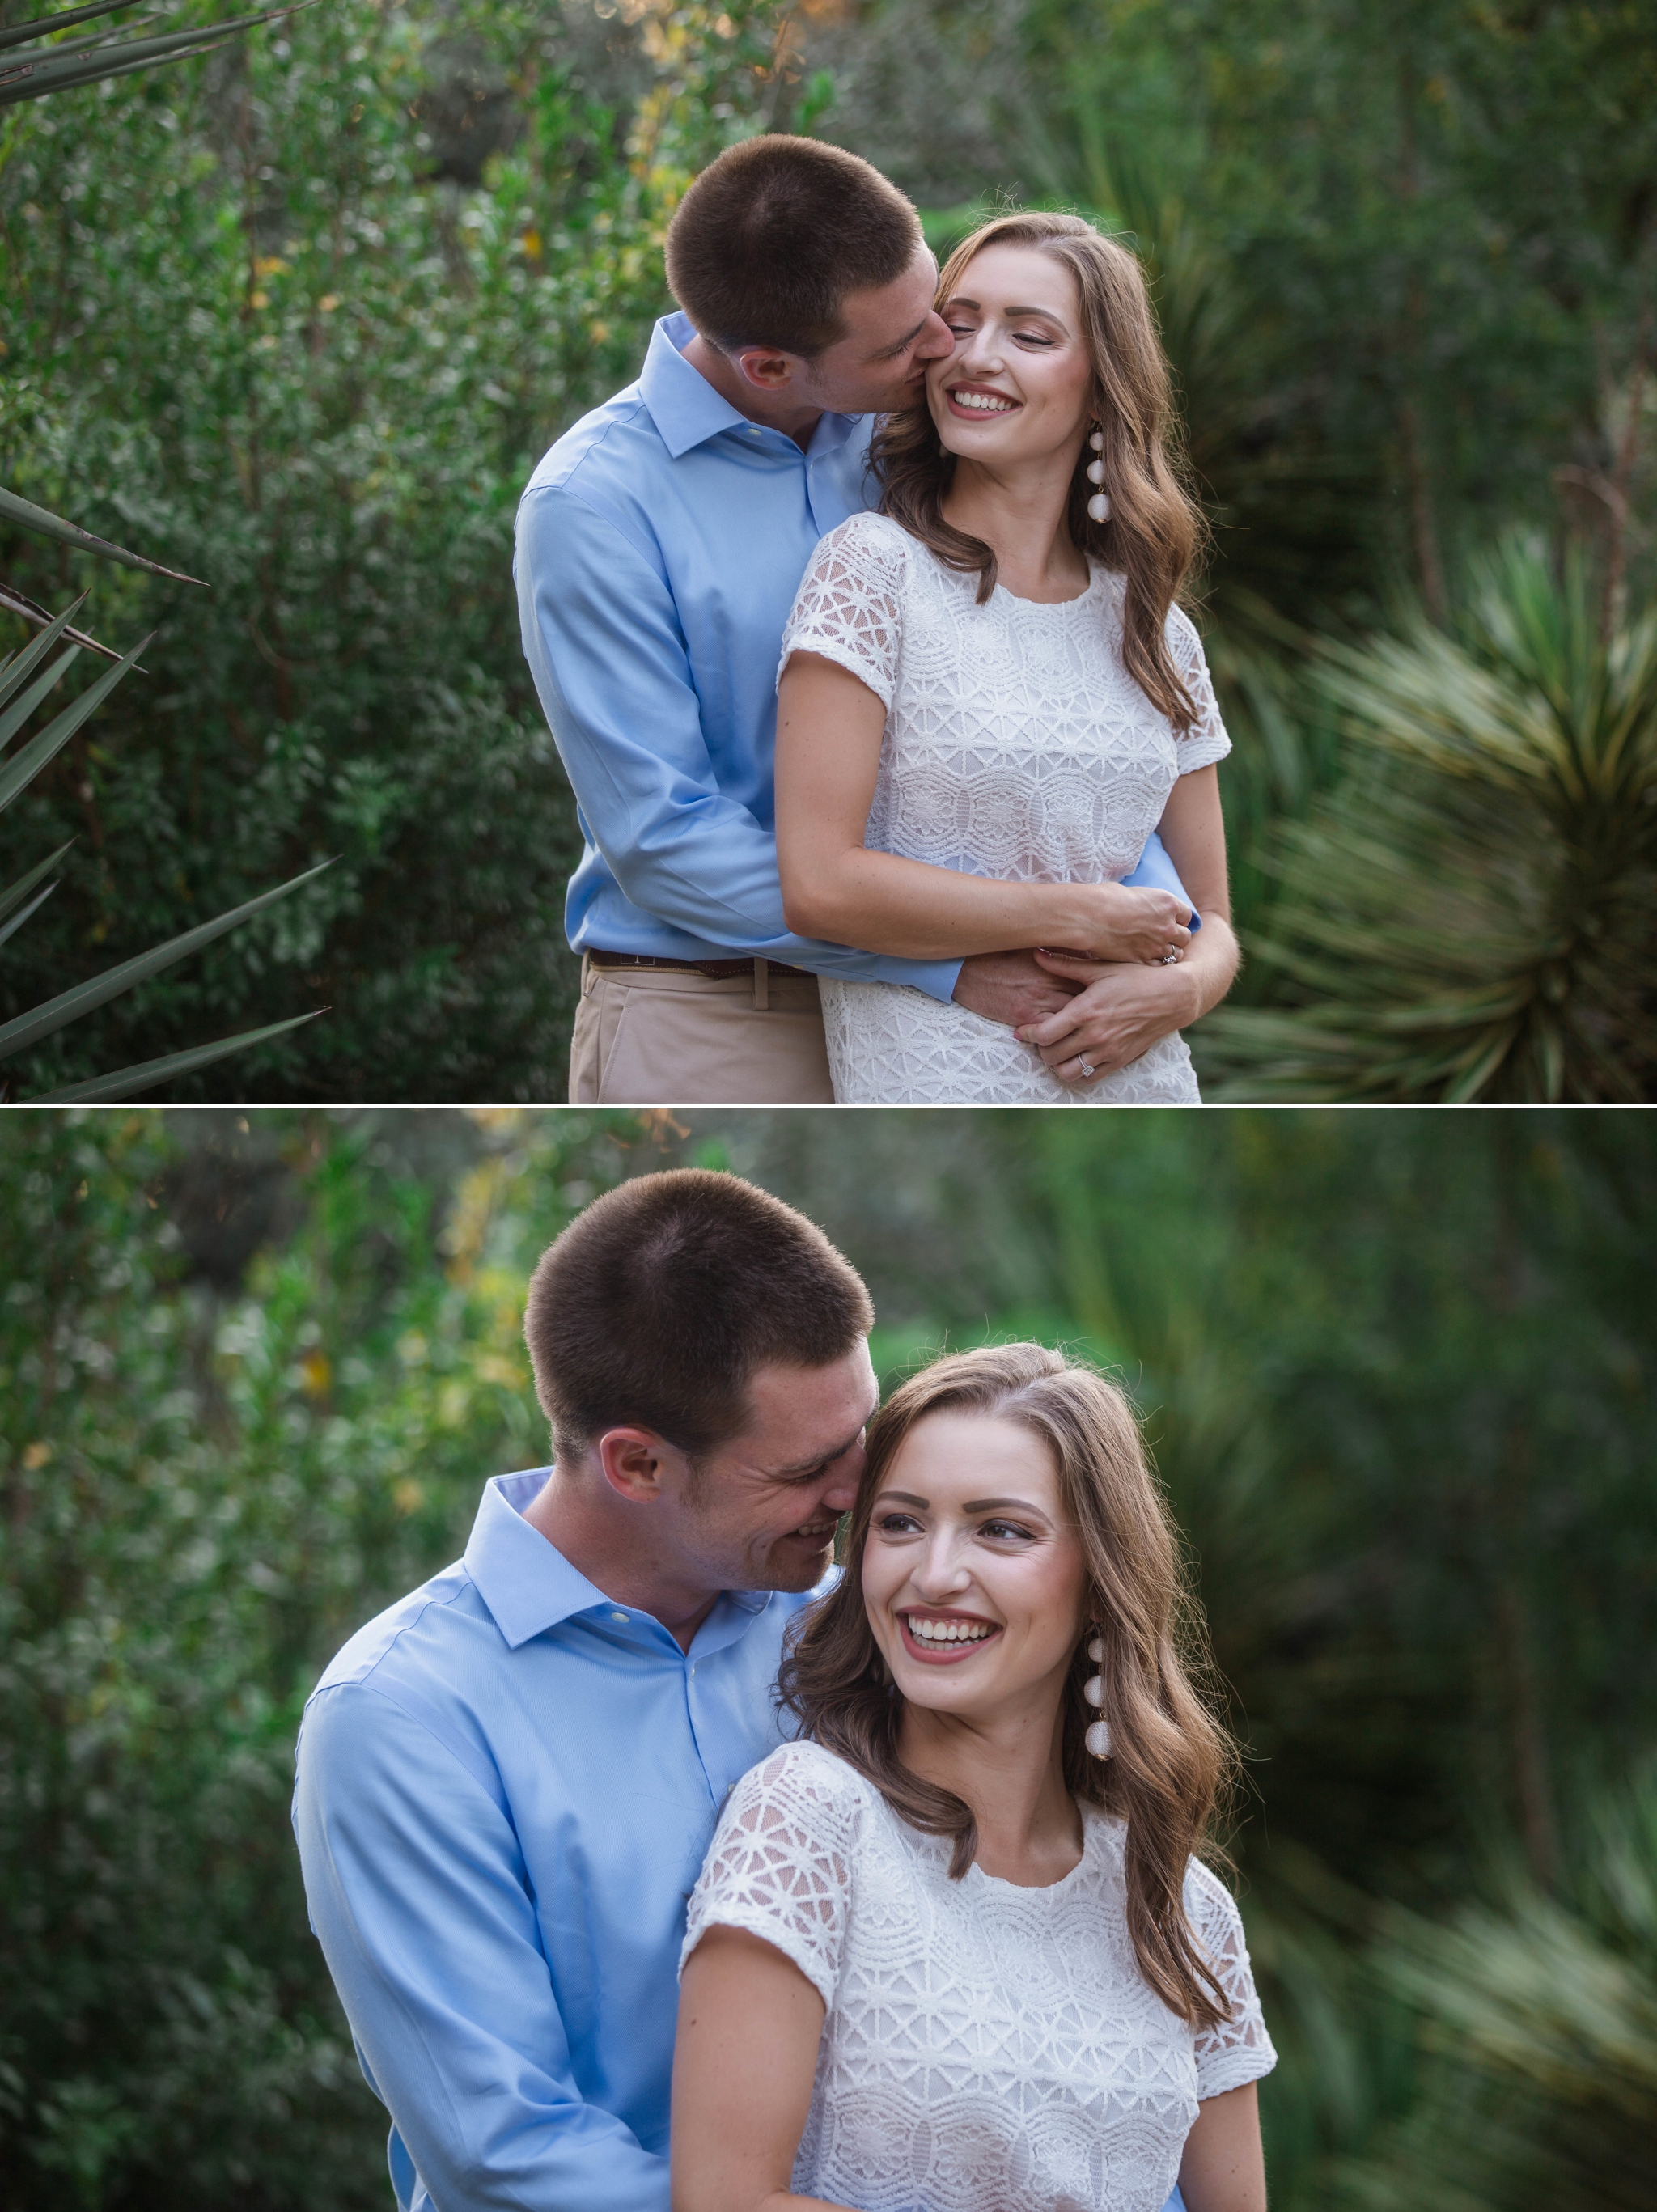 Paige + Tyler - Engagement Photography Session at the JC Raulston Arboretum - Raleigh Wedding Photographer 5.jpg